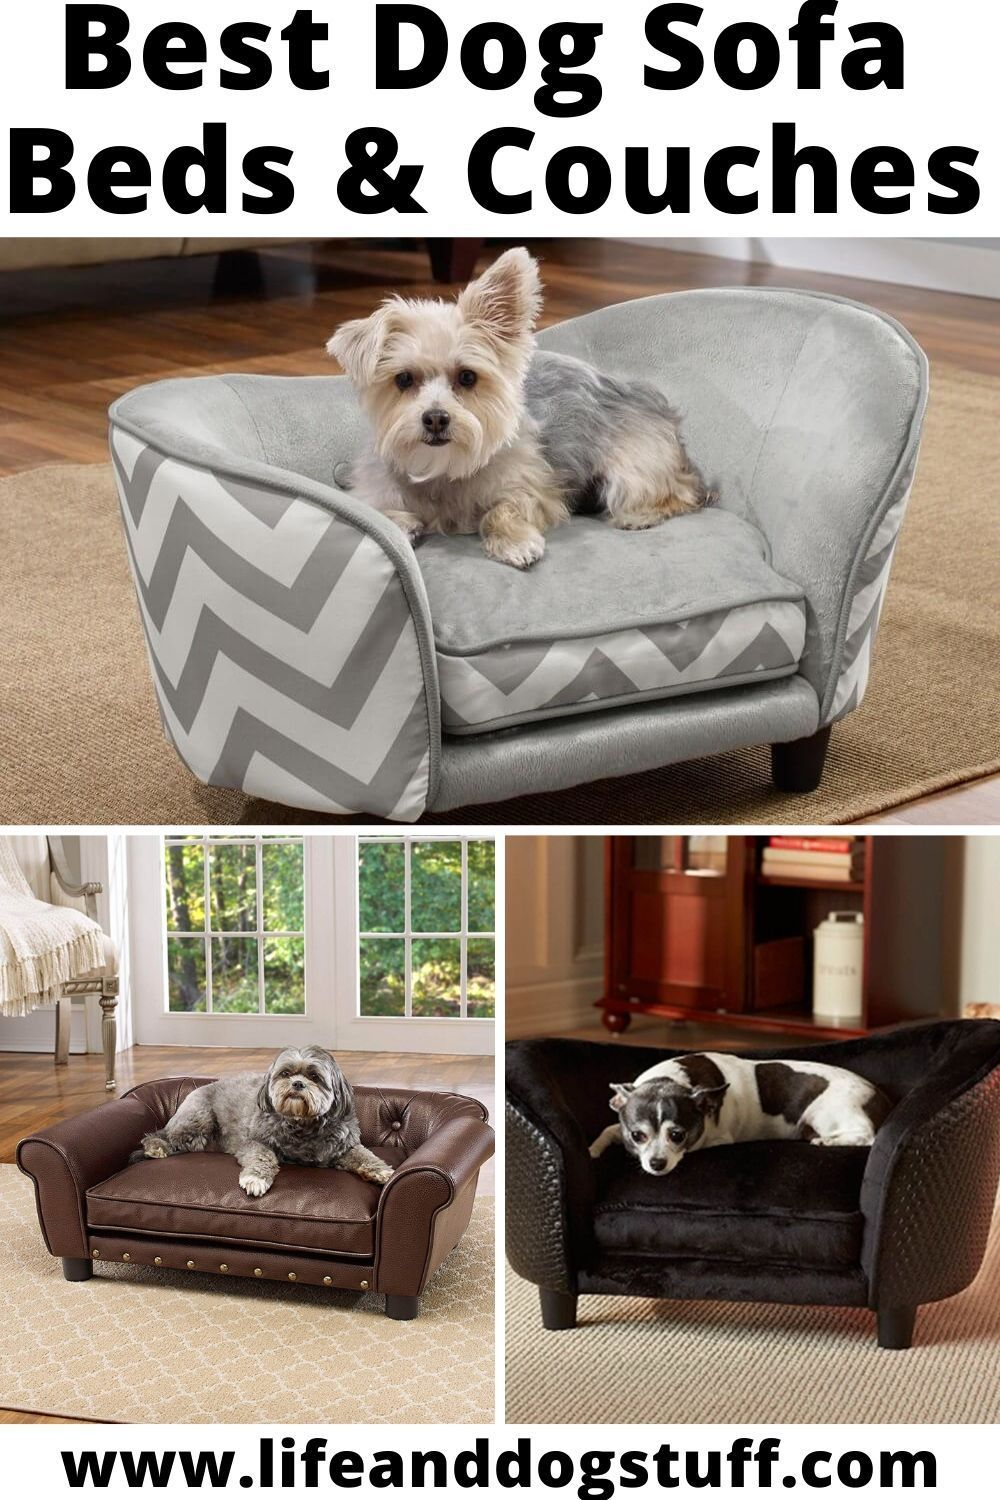 8 Best Dog Sofa Beds And Couches With Images Dog Sofa Dog